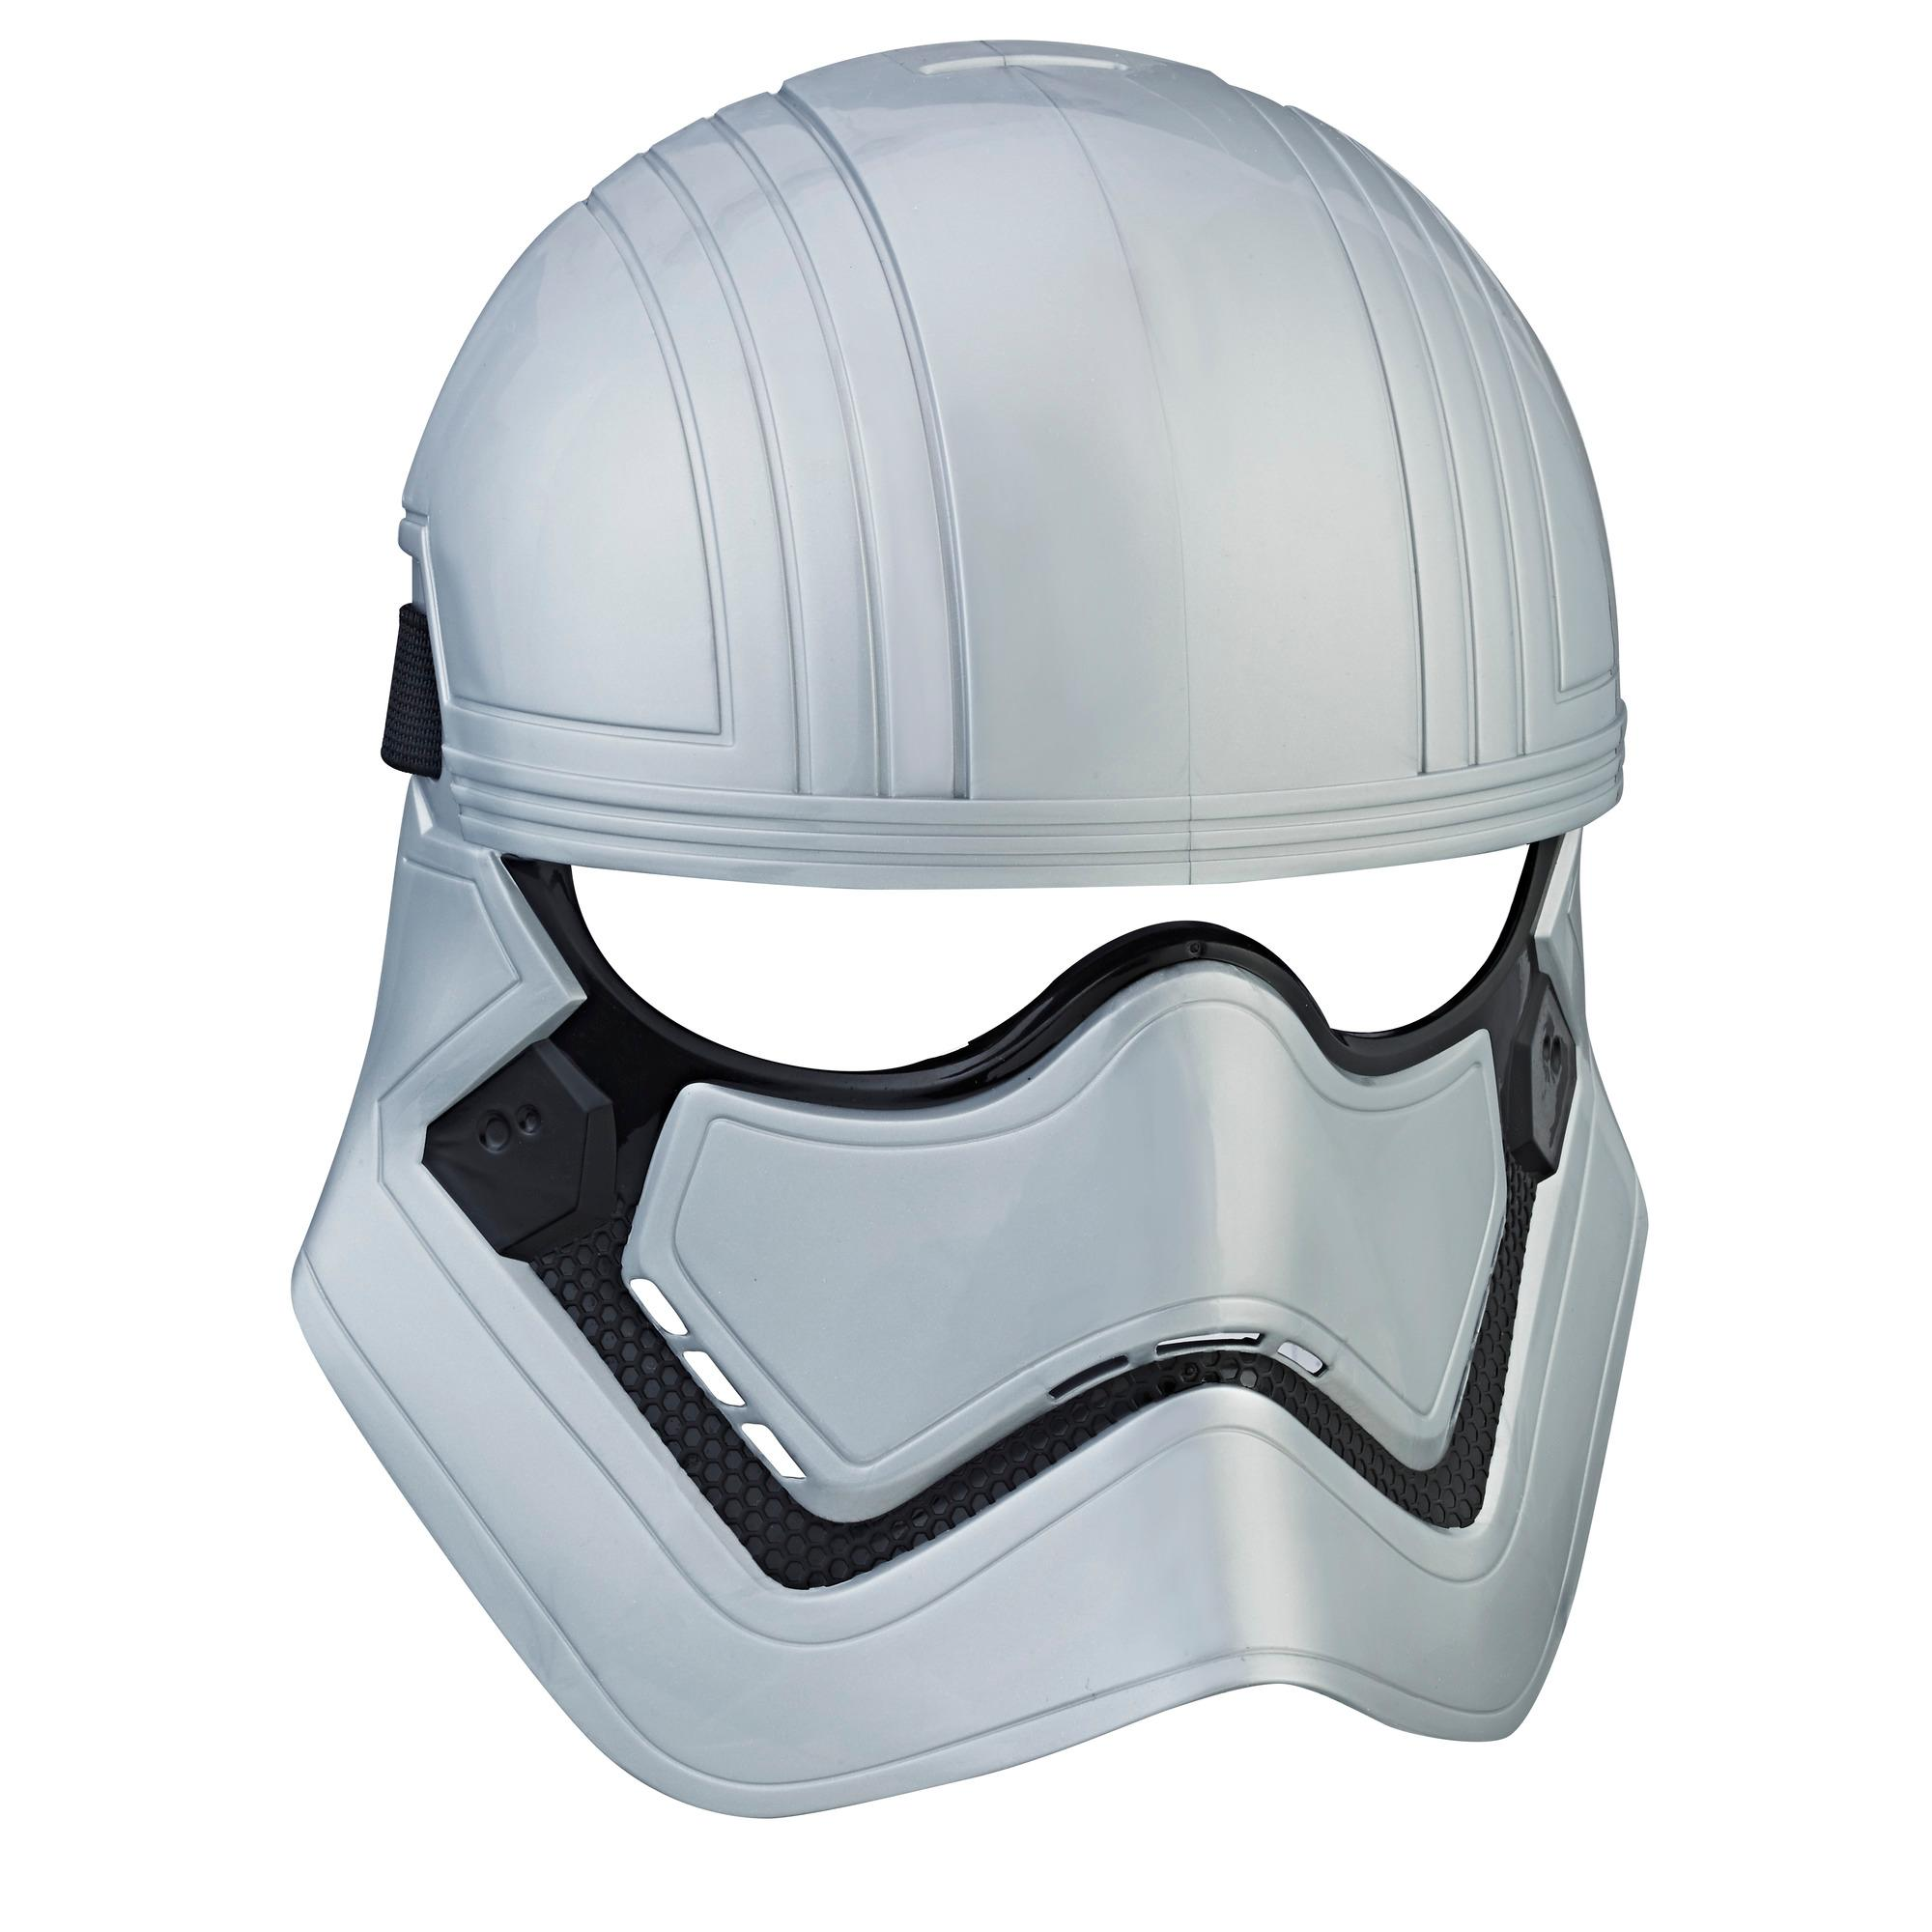 Star Wars Episode 8 Masken Captain Phasma